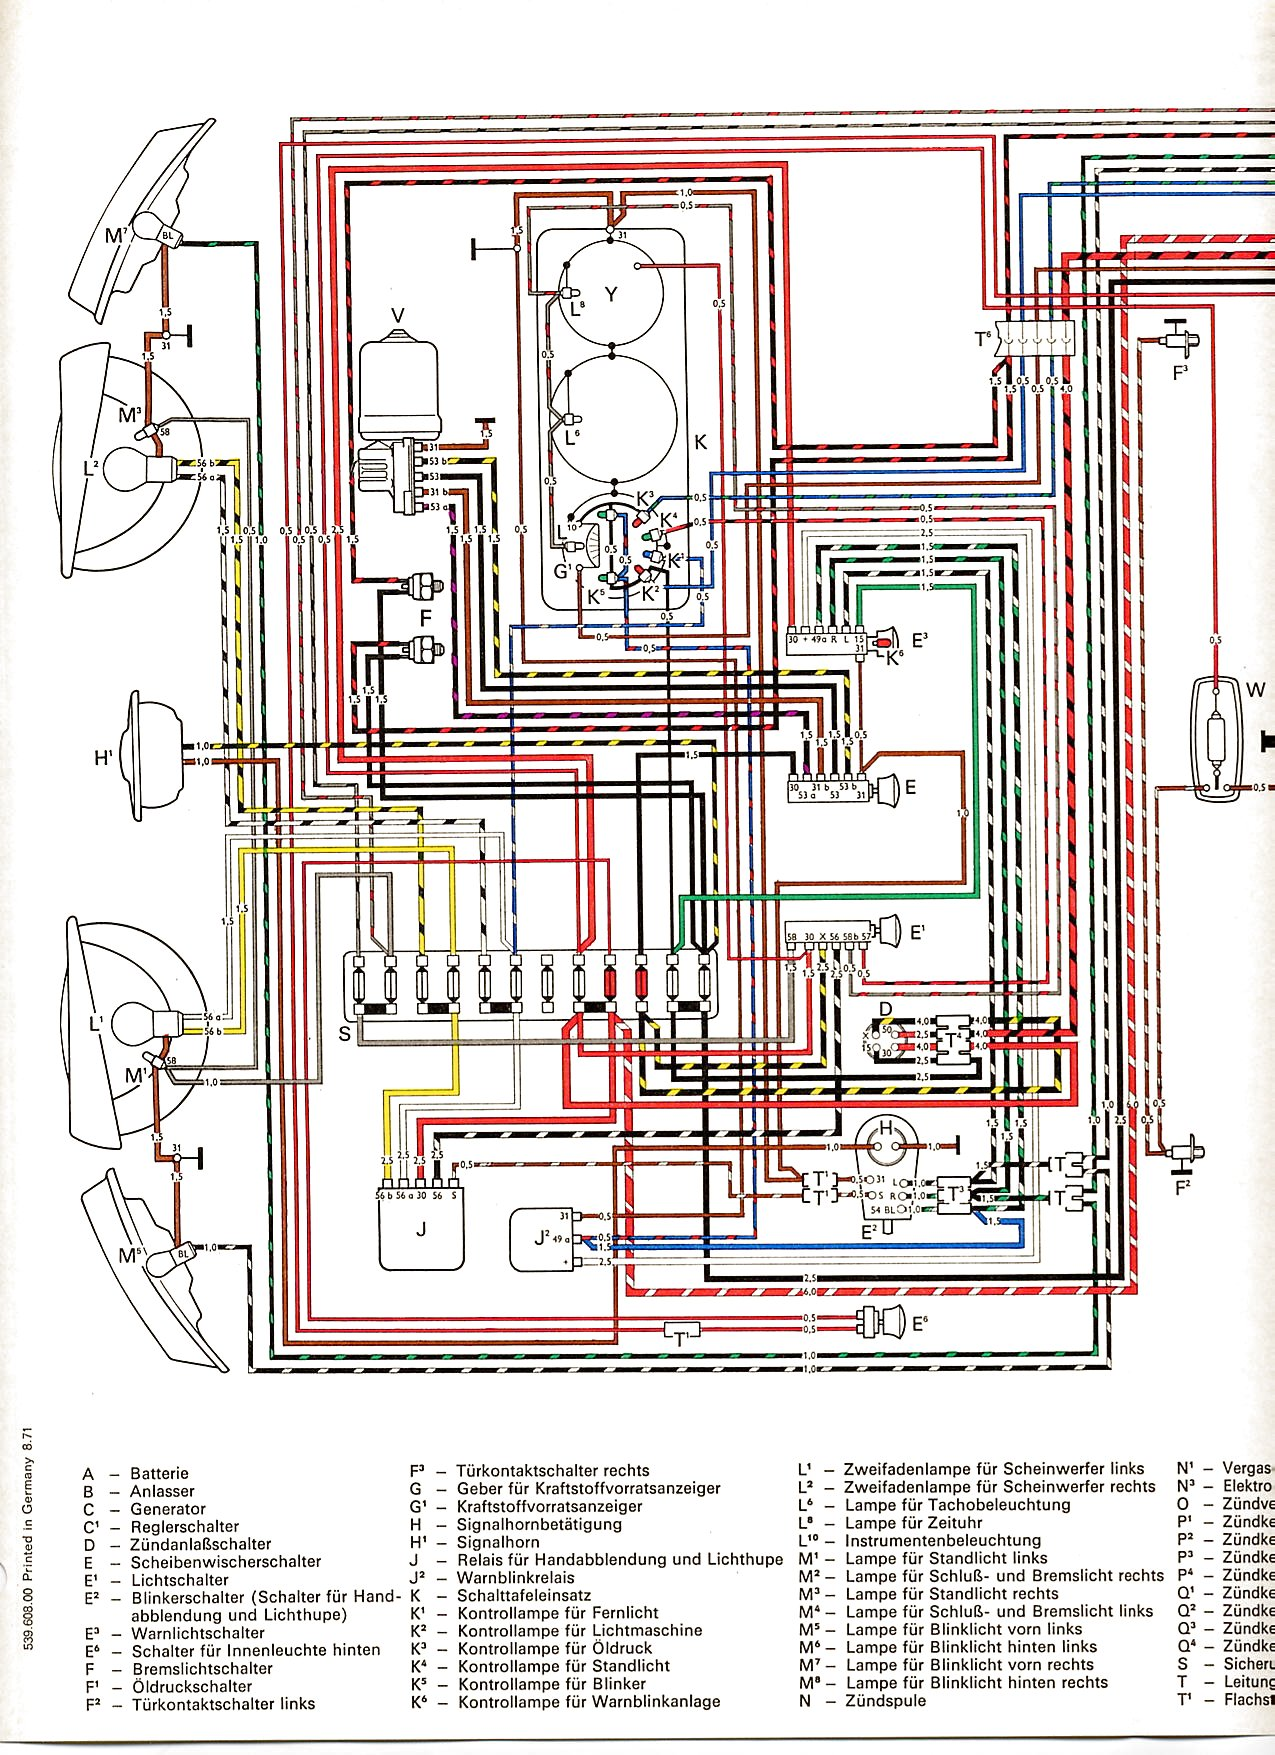 1974 Ford Engine Wiring Trusted Diagrams Harness Vintagebus Com Vw Bus And Other Color Codes